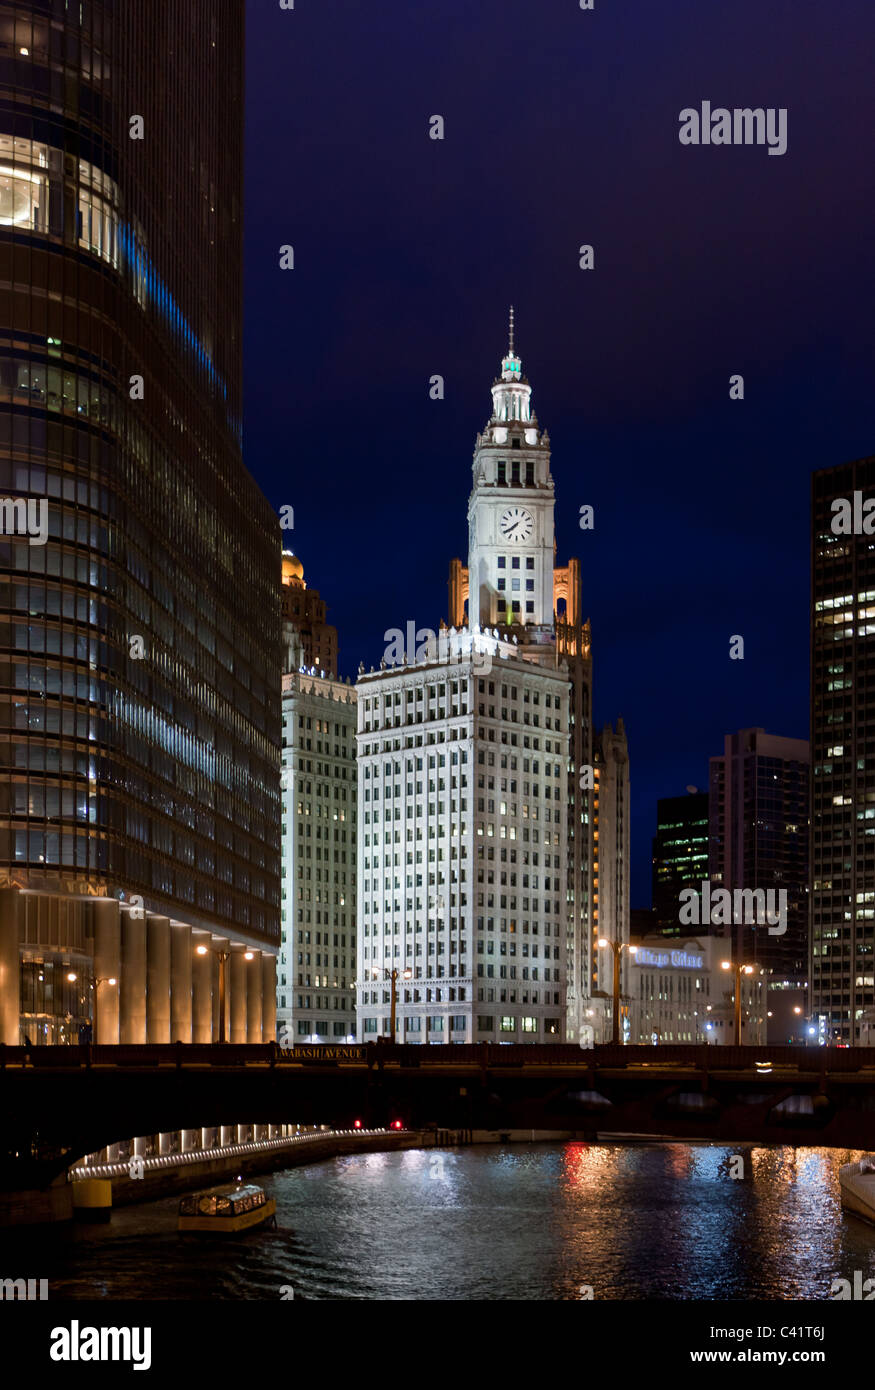 The Wrigley Building in Chicago at night - Stock Image